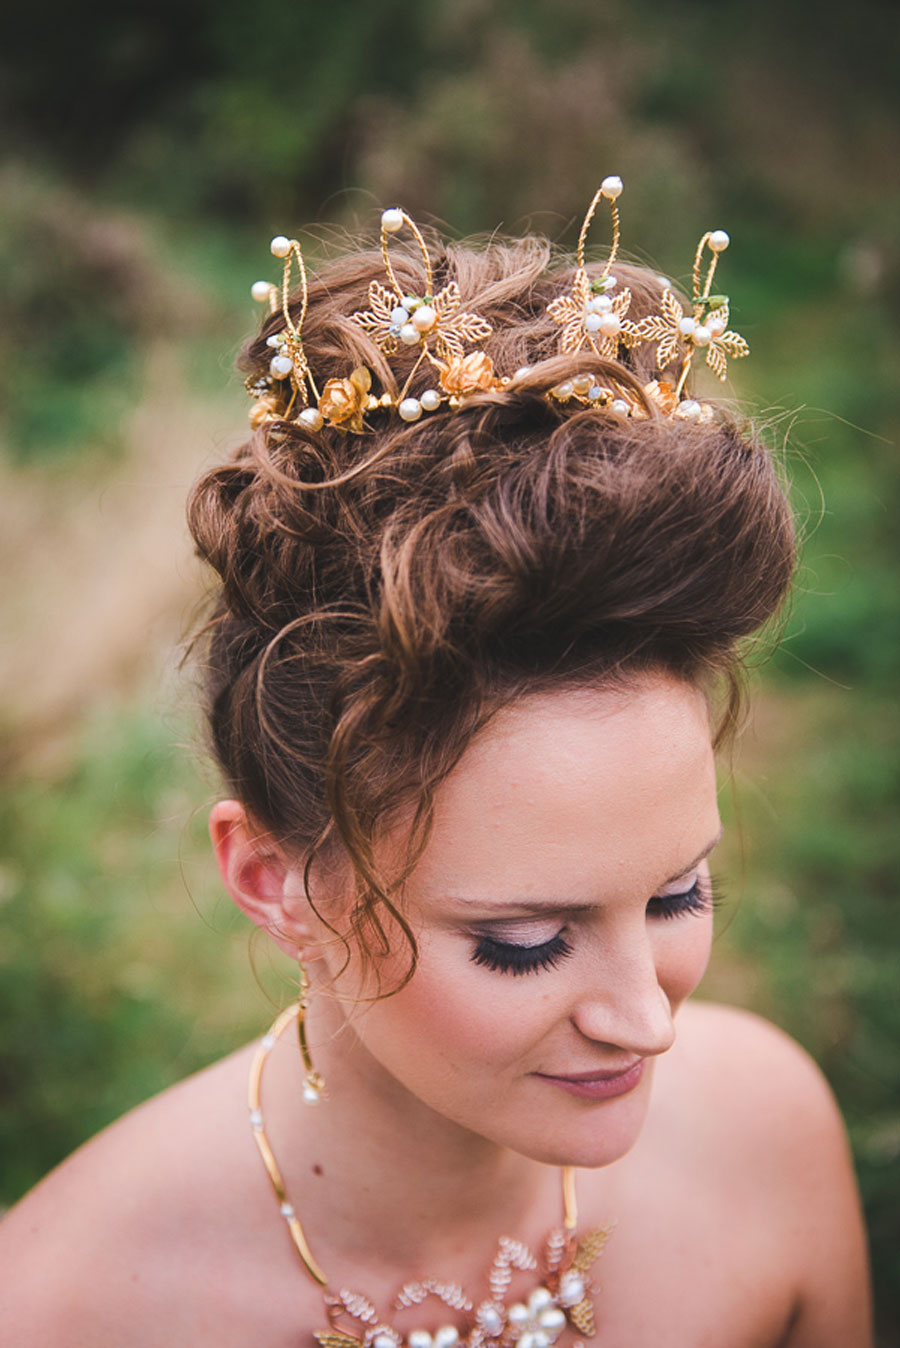 A Late Summer Renaissance-Meets-Fantasy Themed Bridal Shoot0054